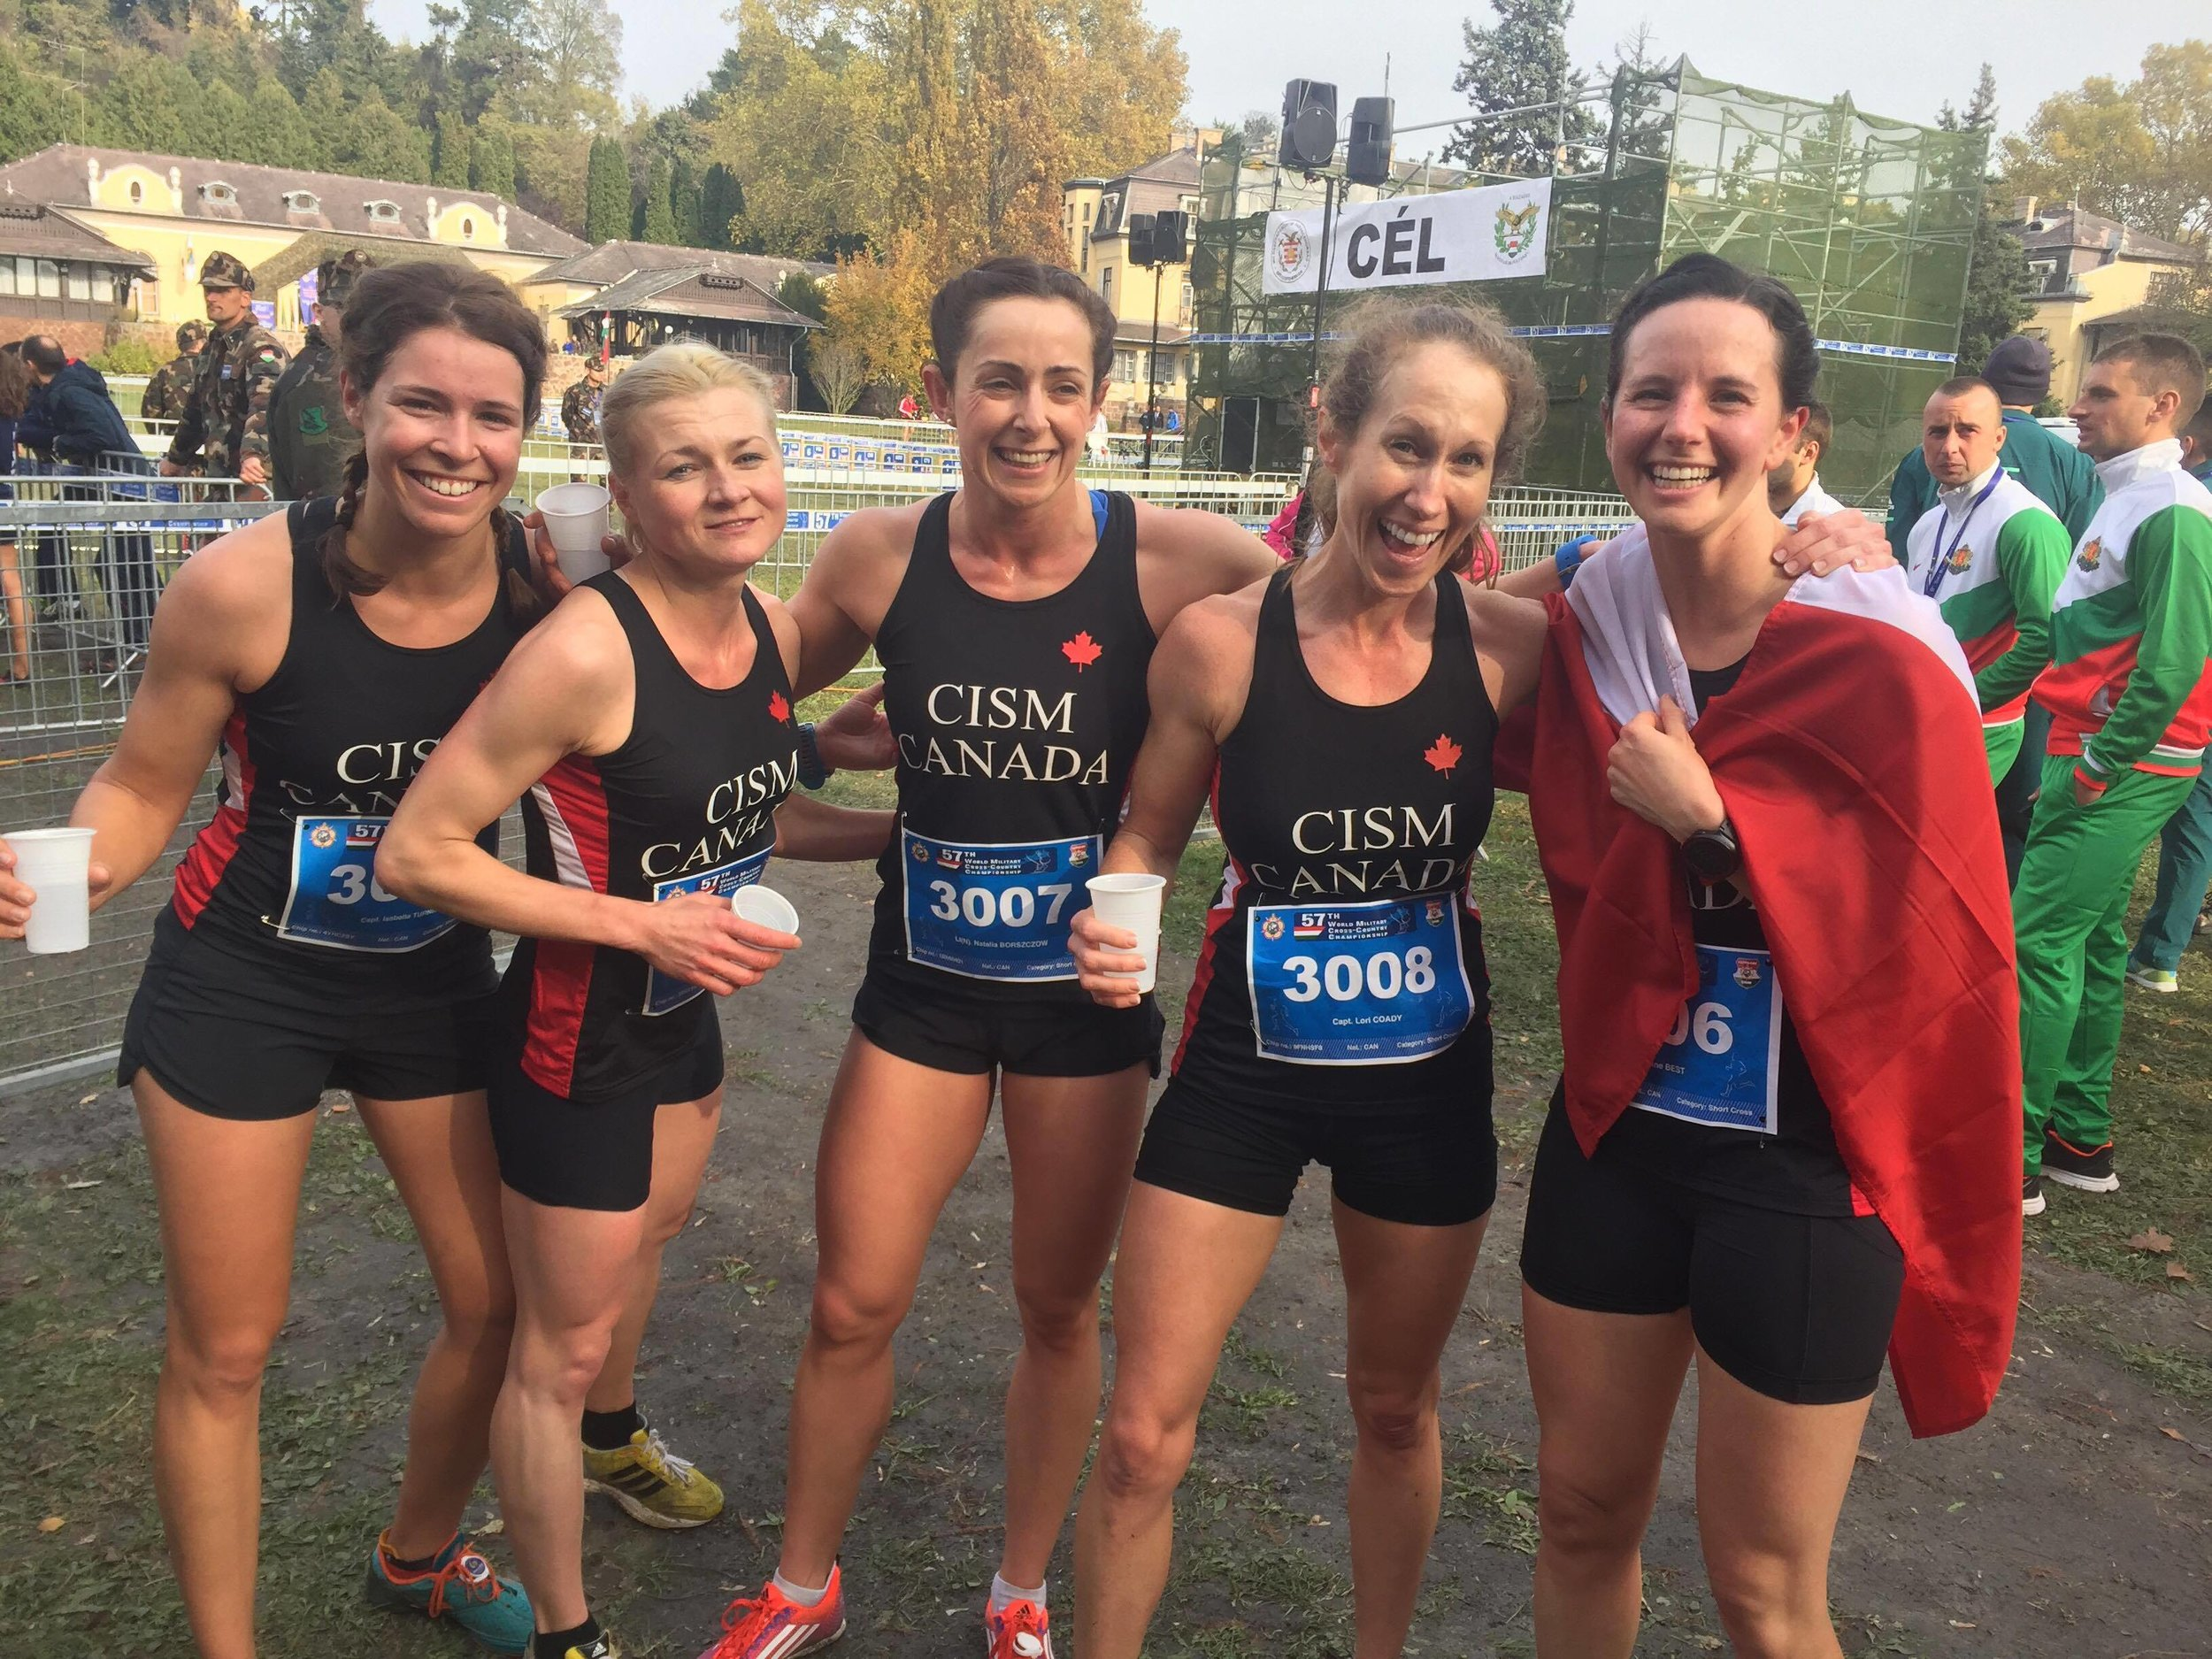 Short Course Female Team, L to R: Isabelle, Maria, Natalia, Lori and CJ.